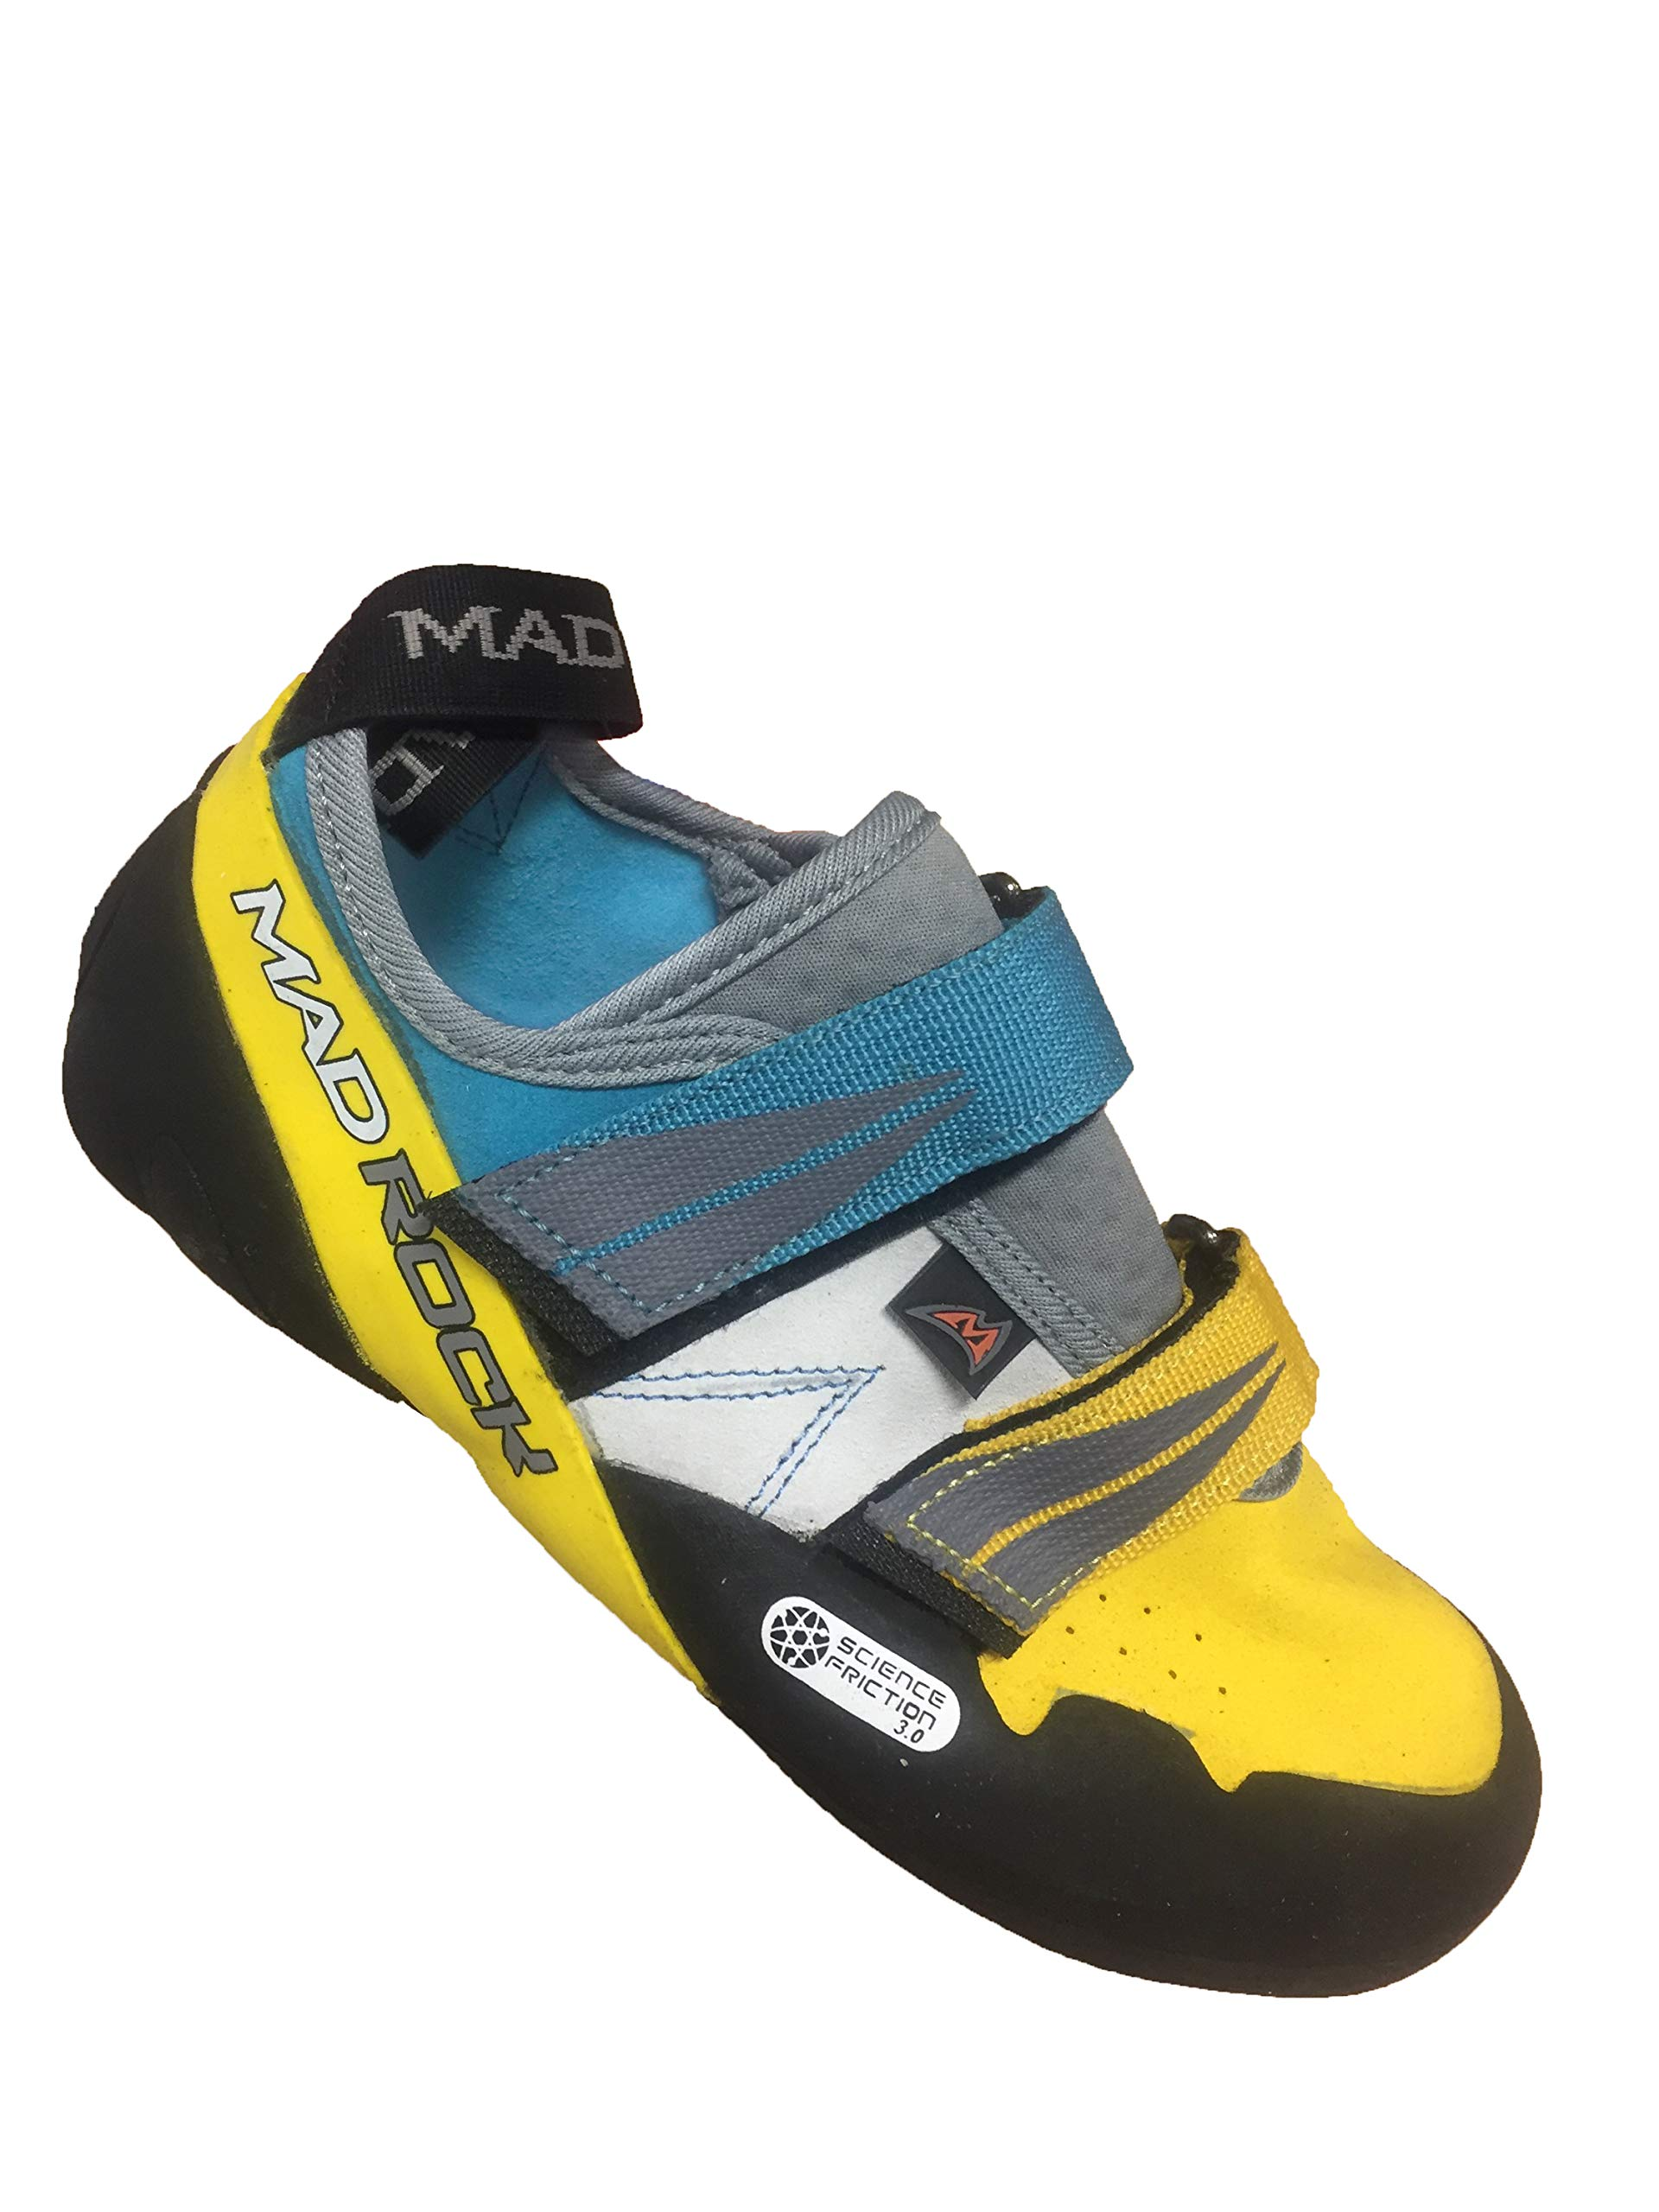 Mad Rock Agama Climbing Shoe Teal/Yellow, 5.0 by Mad Rock